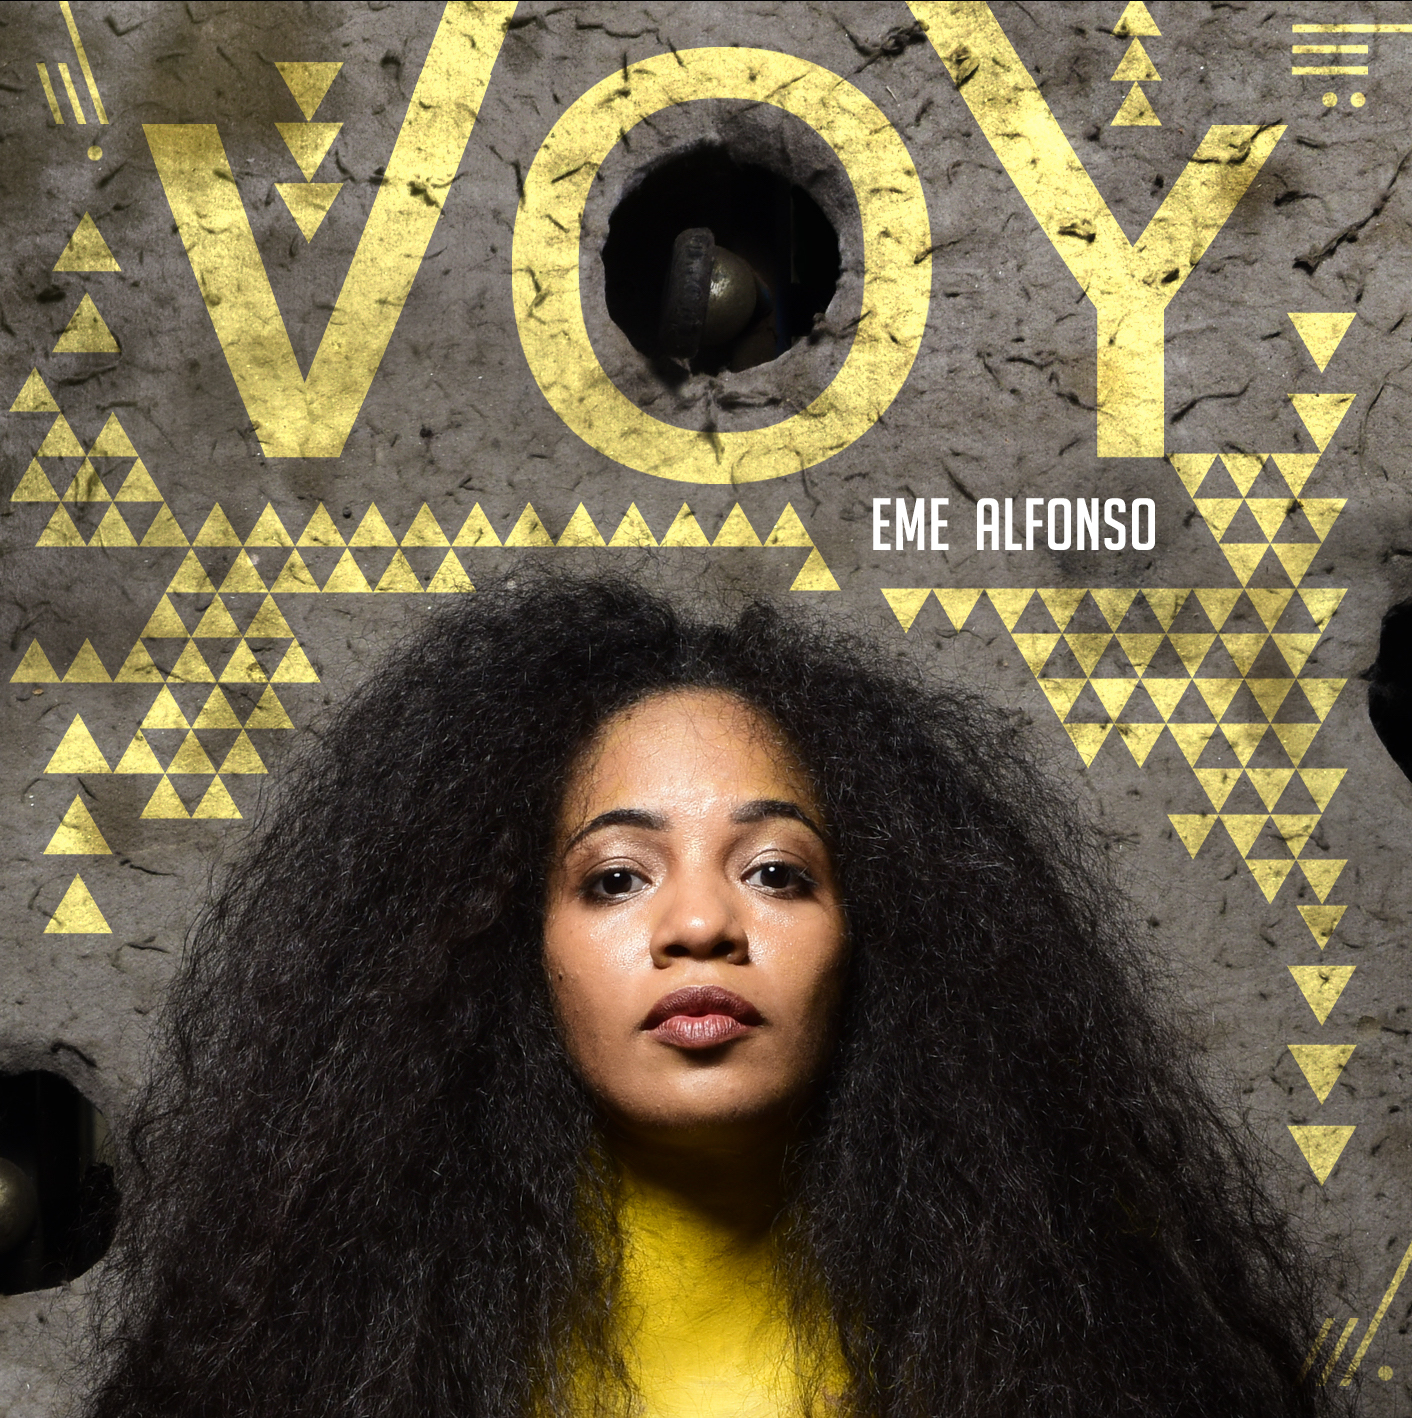 Eme Alfonso Announces US Release of New Album VOY